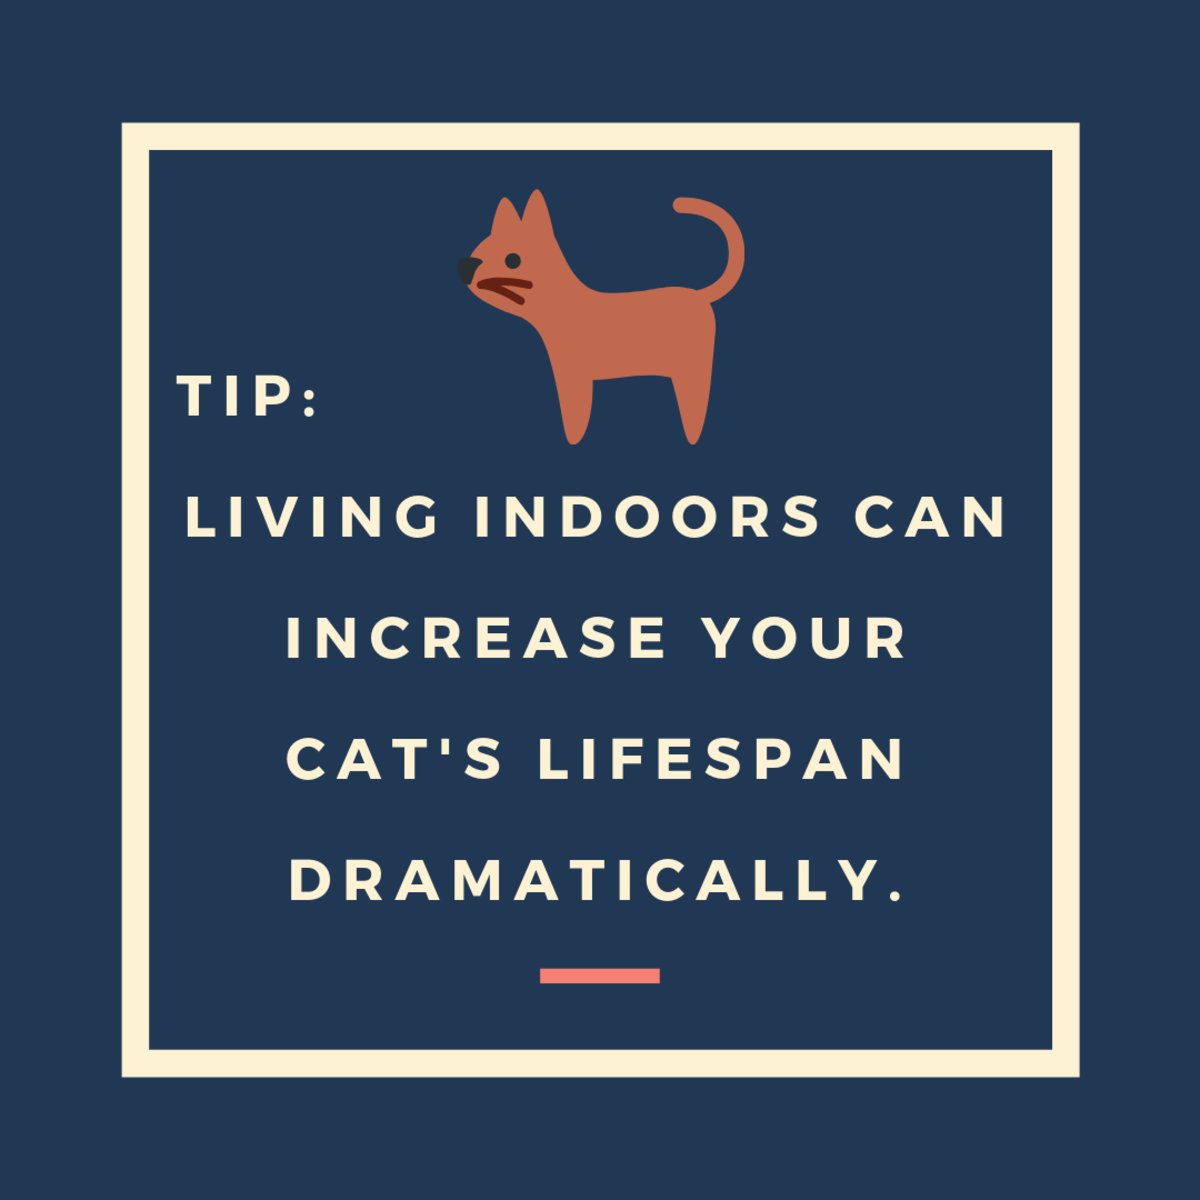 Keep Cats Indoors Only